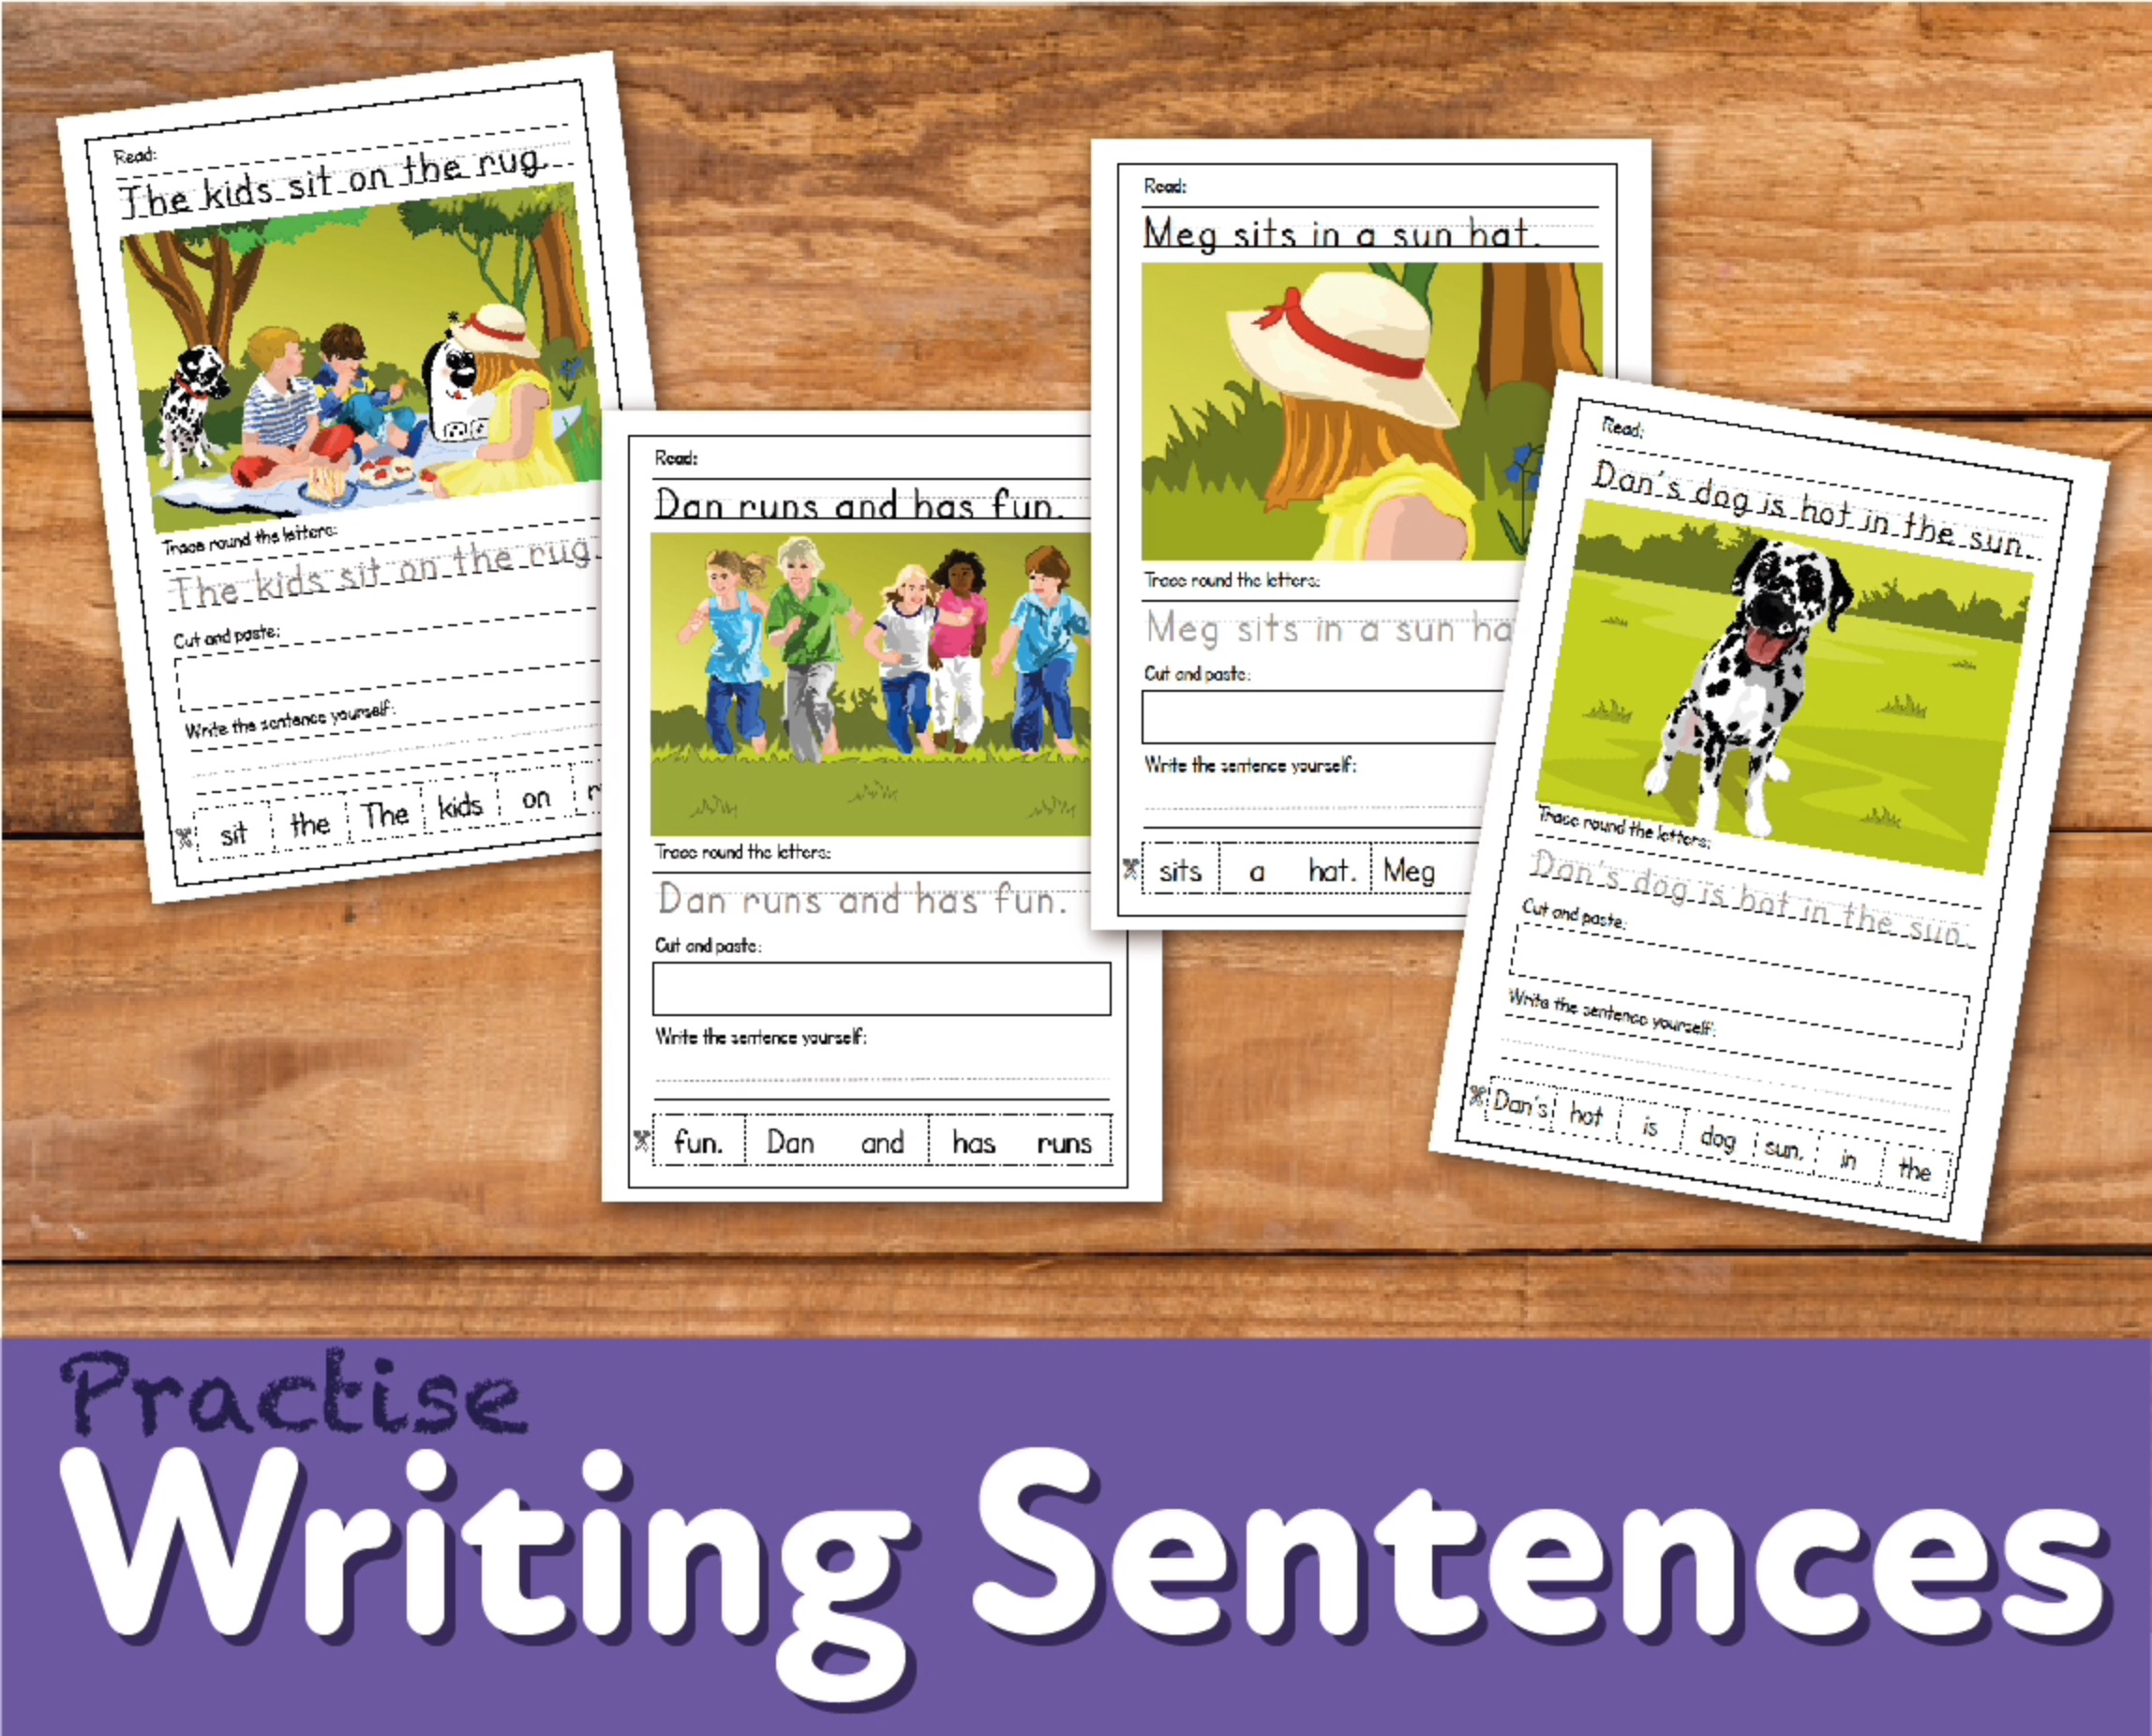 Sentence Writing Practice 'Zoggy At A Picnic' (4-7 years)